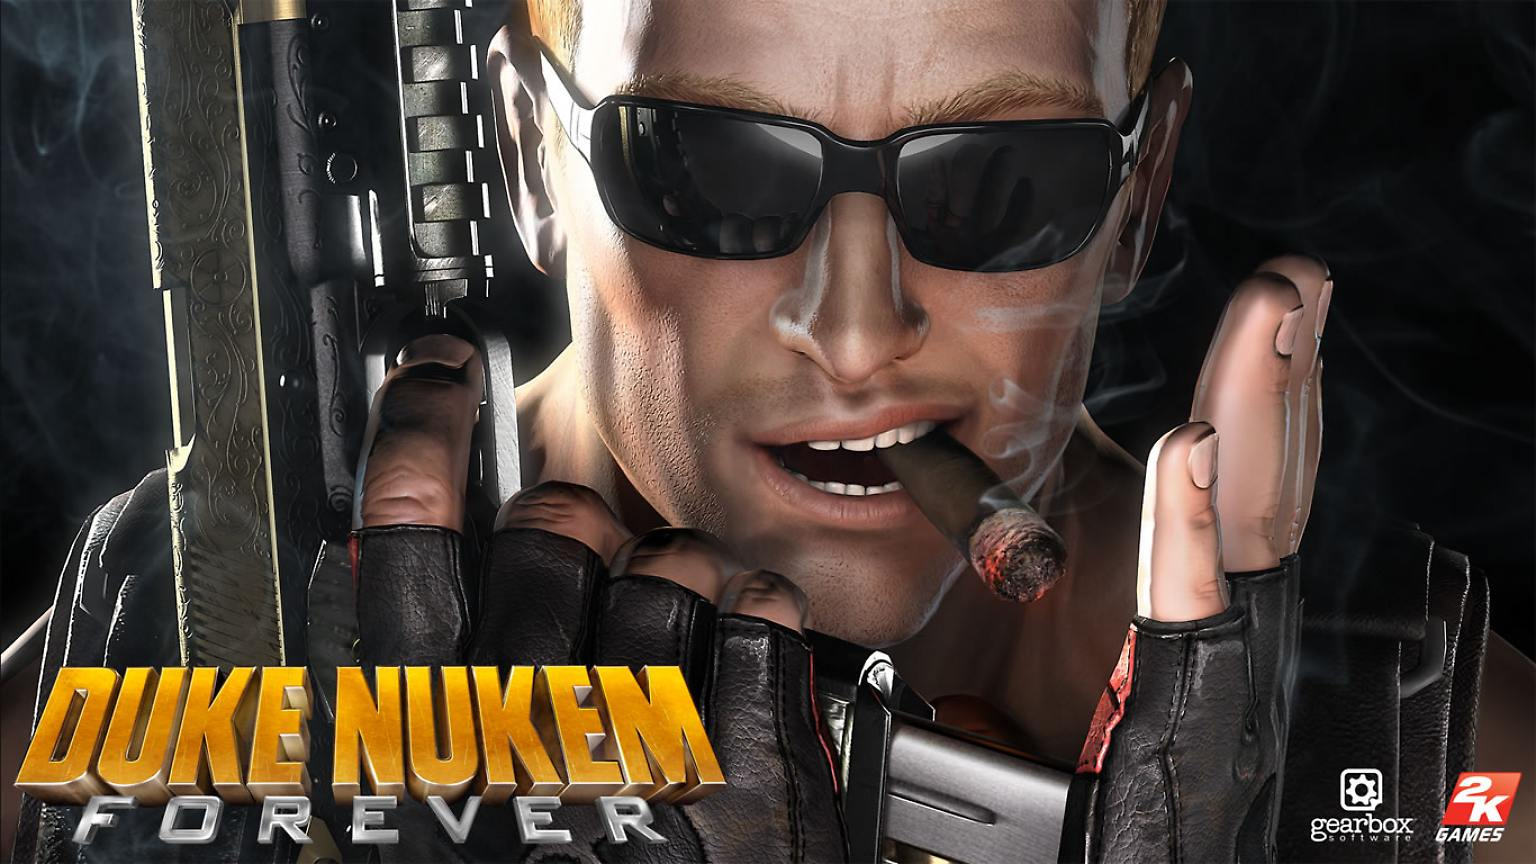 Exactly Duke nukem forever twins nude gif commit error